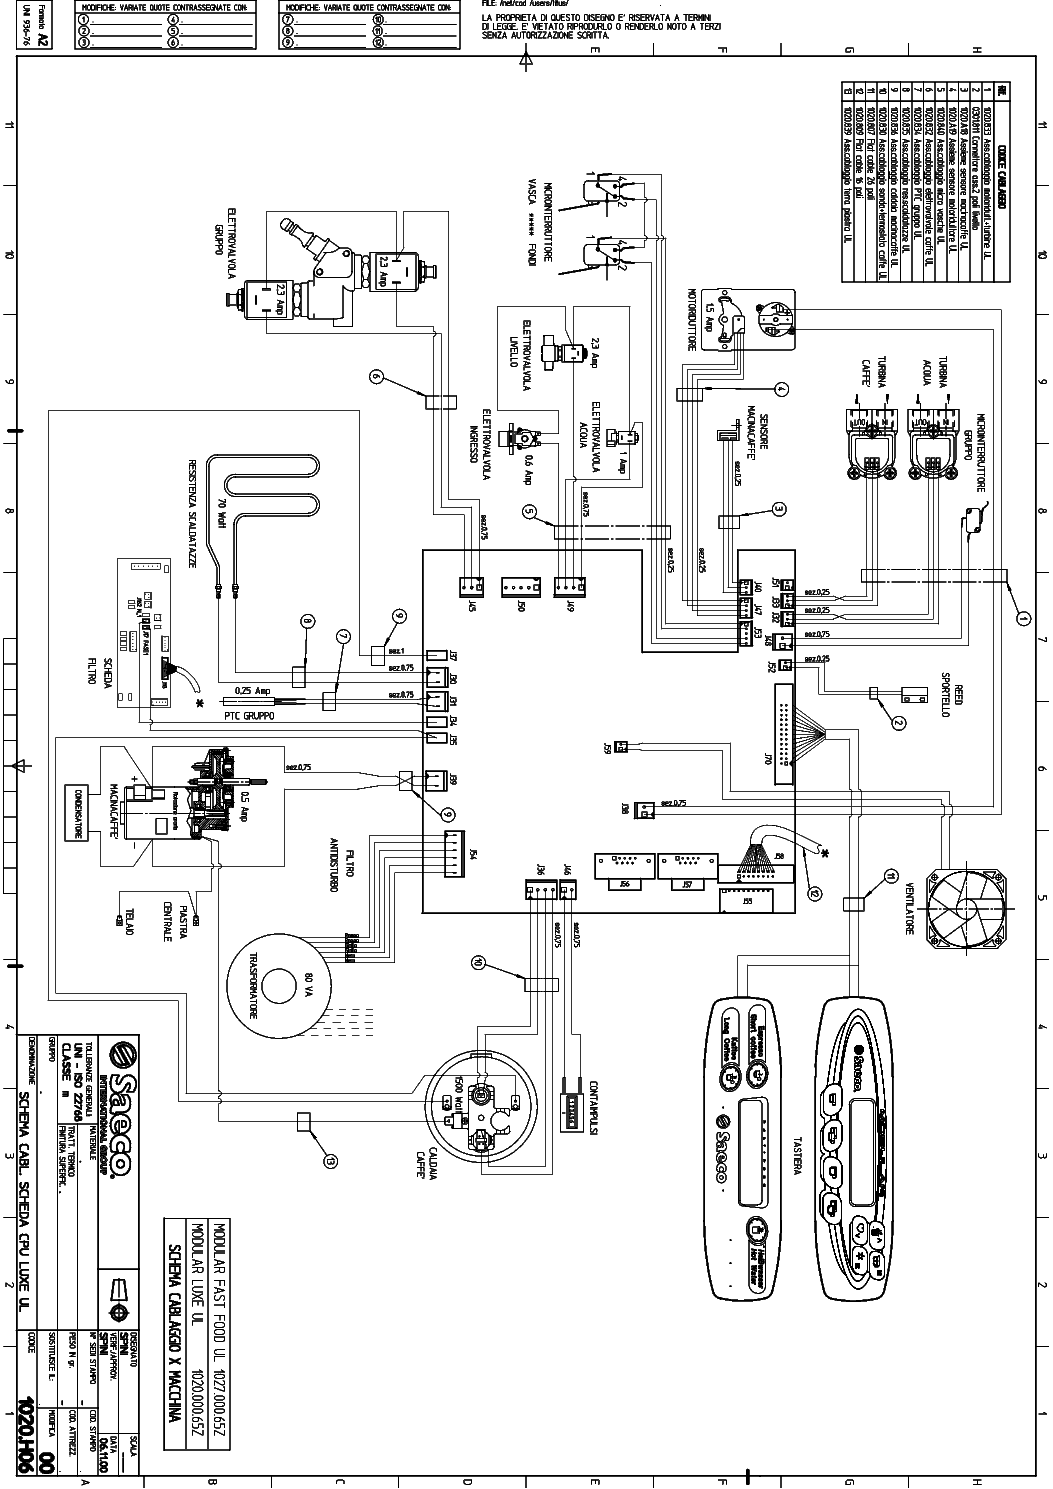 gaggia syncrony digital service manual